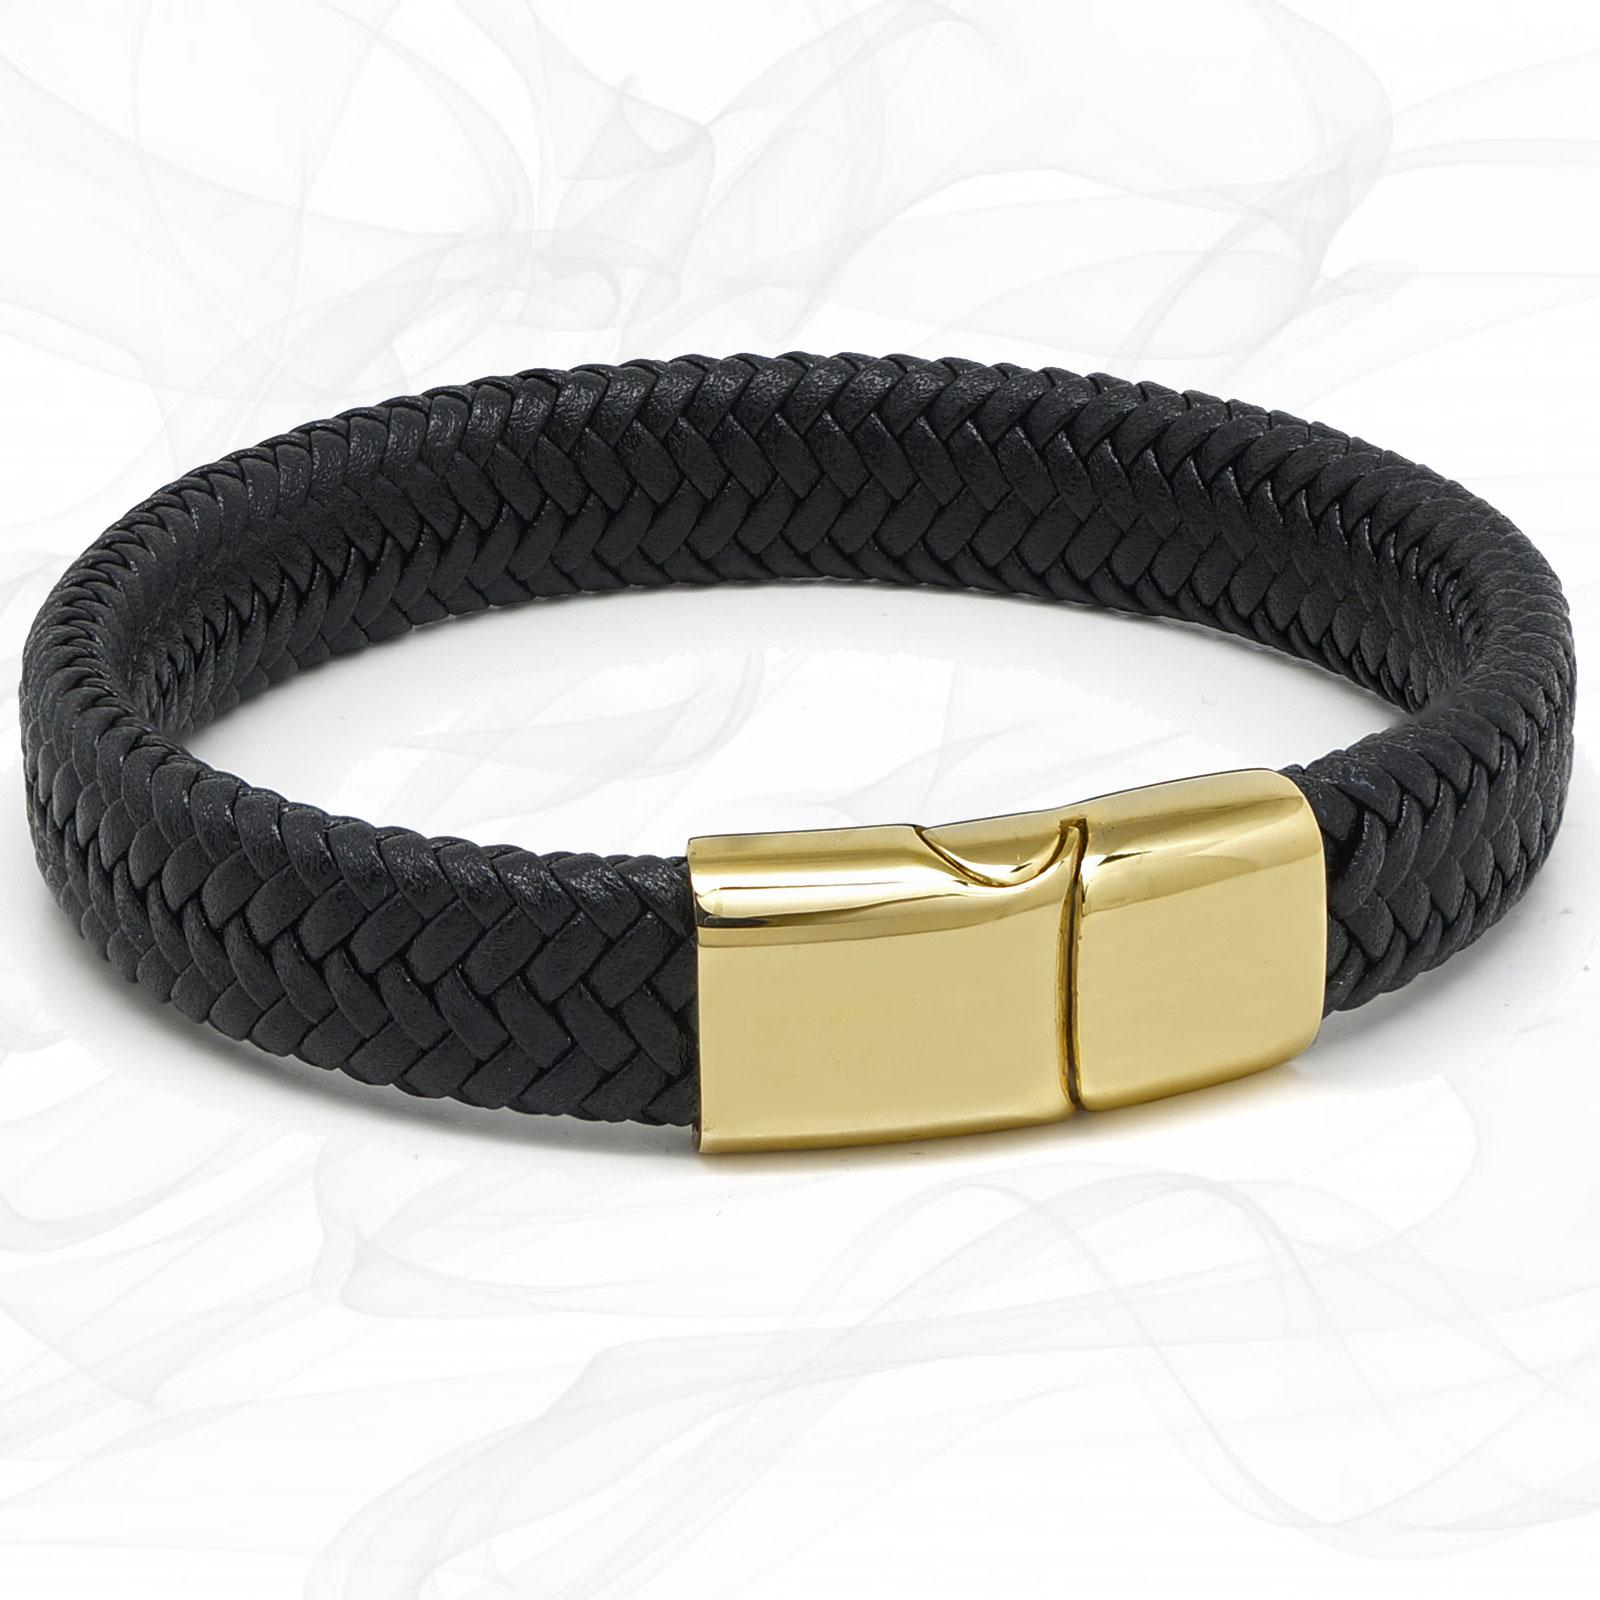 Chunky Black Super Soft Premium Leather Bracelet with a Gold Sliding Magnetic Clasp.